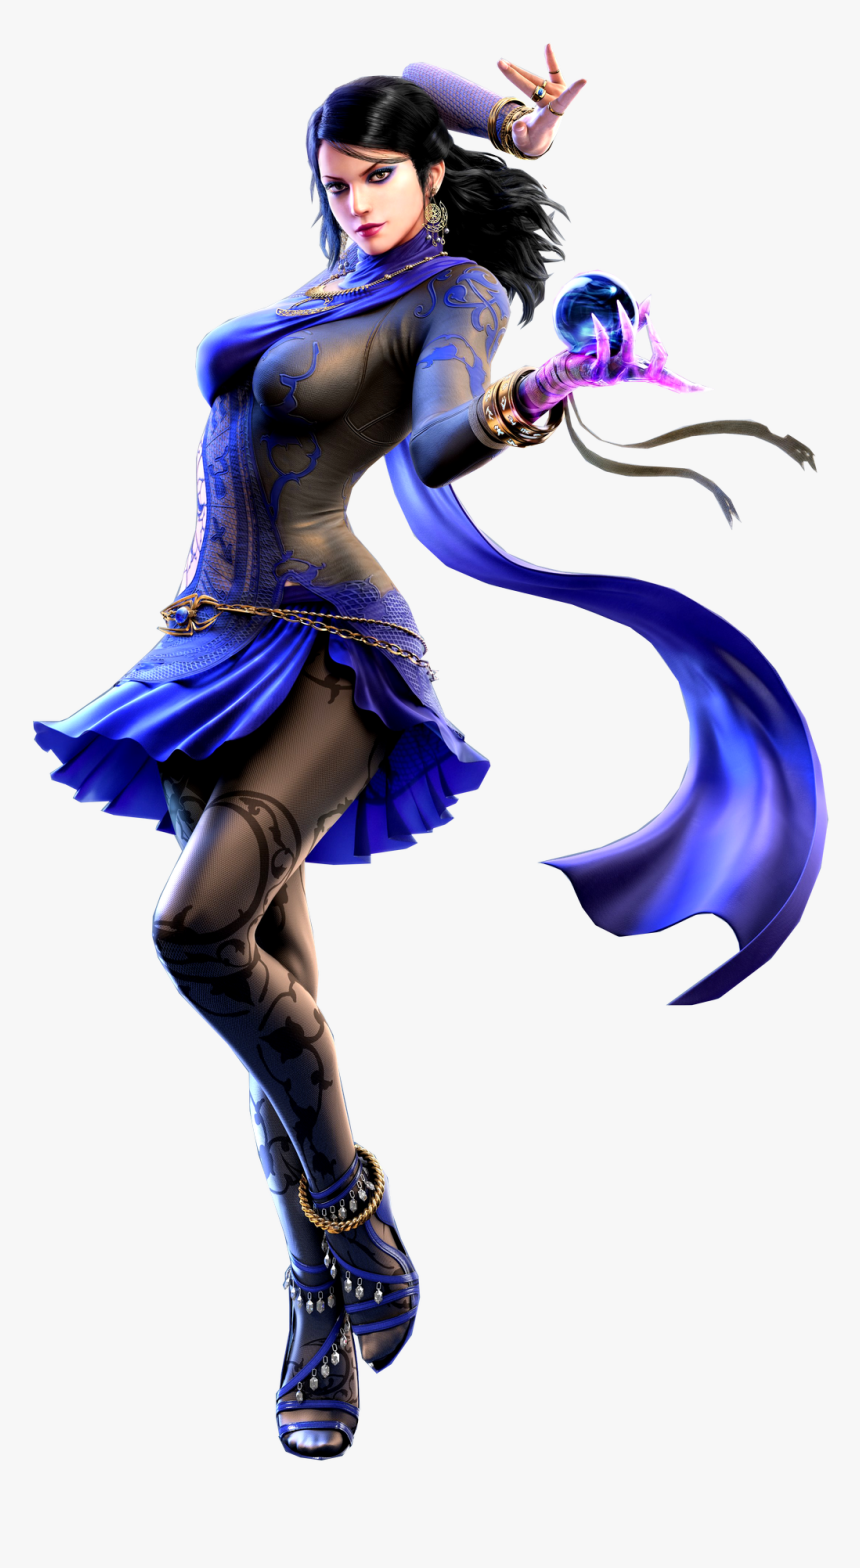 Tekken Png, Transparent Png, Free Download